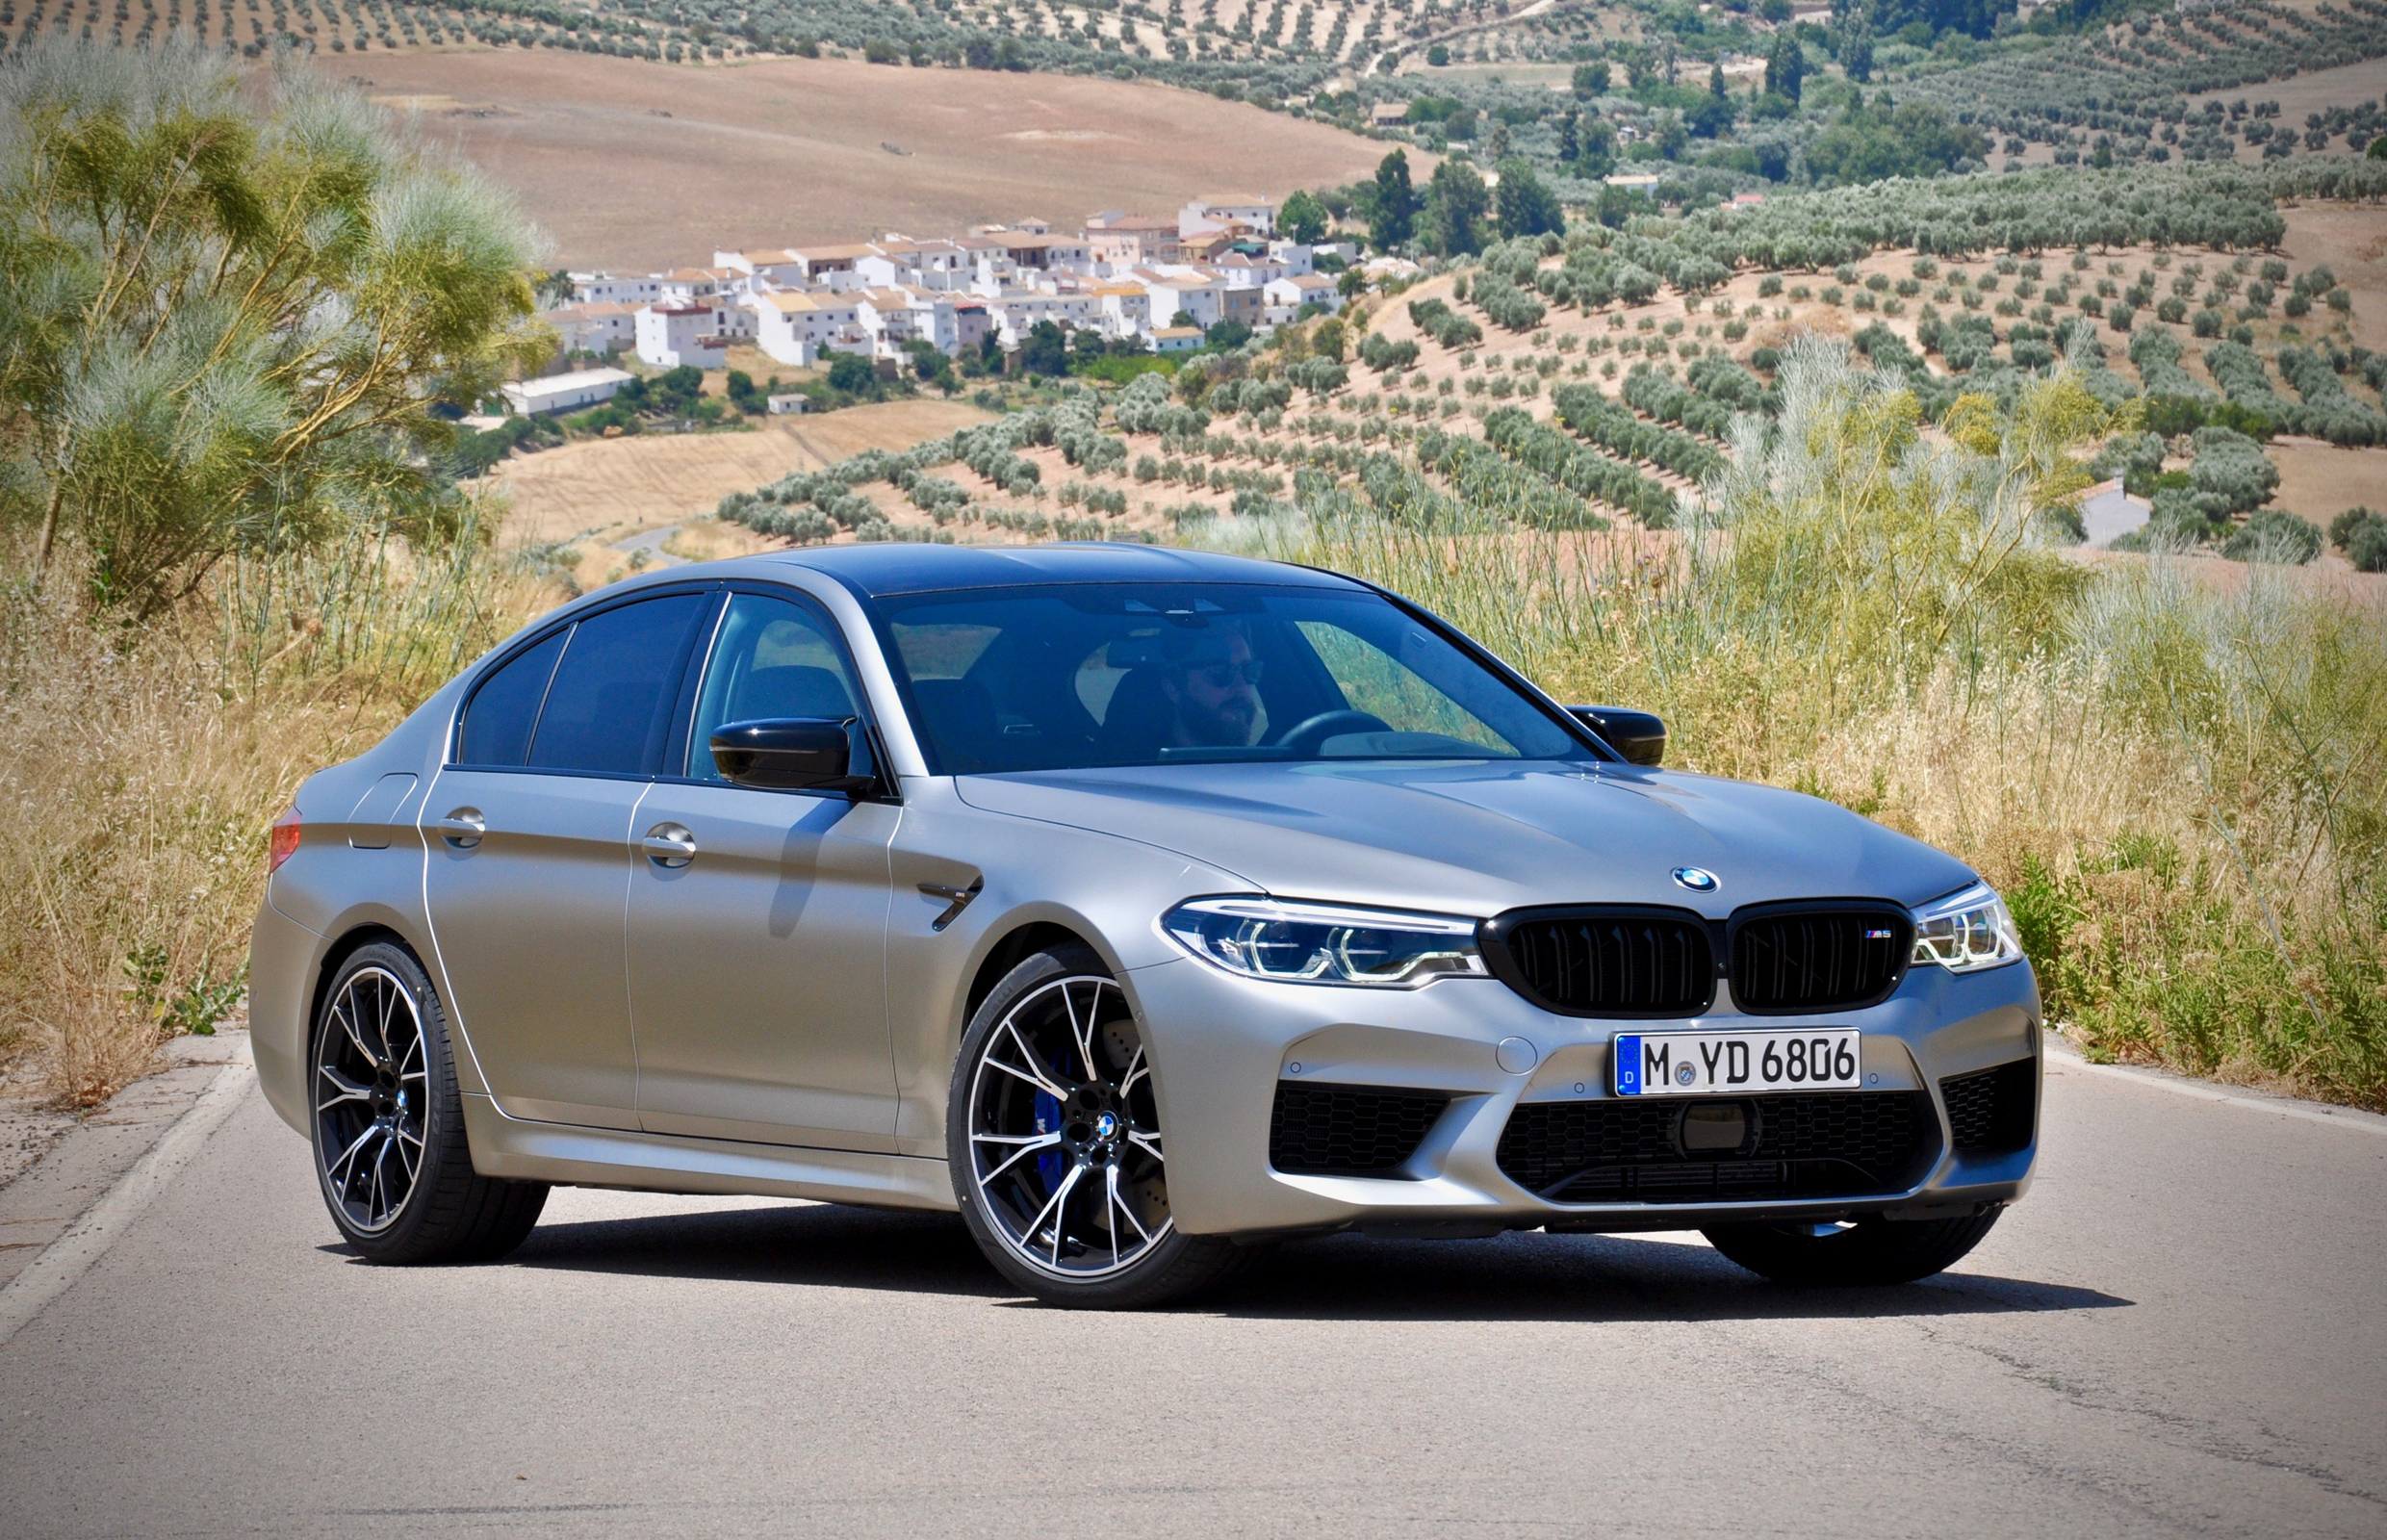 25 Best Review 2019 Bmw M5 Interior with 2019 Bmw M5